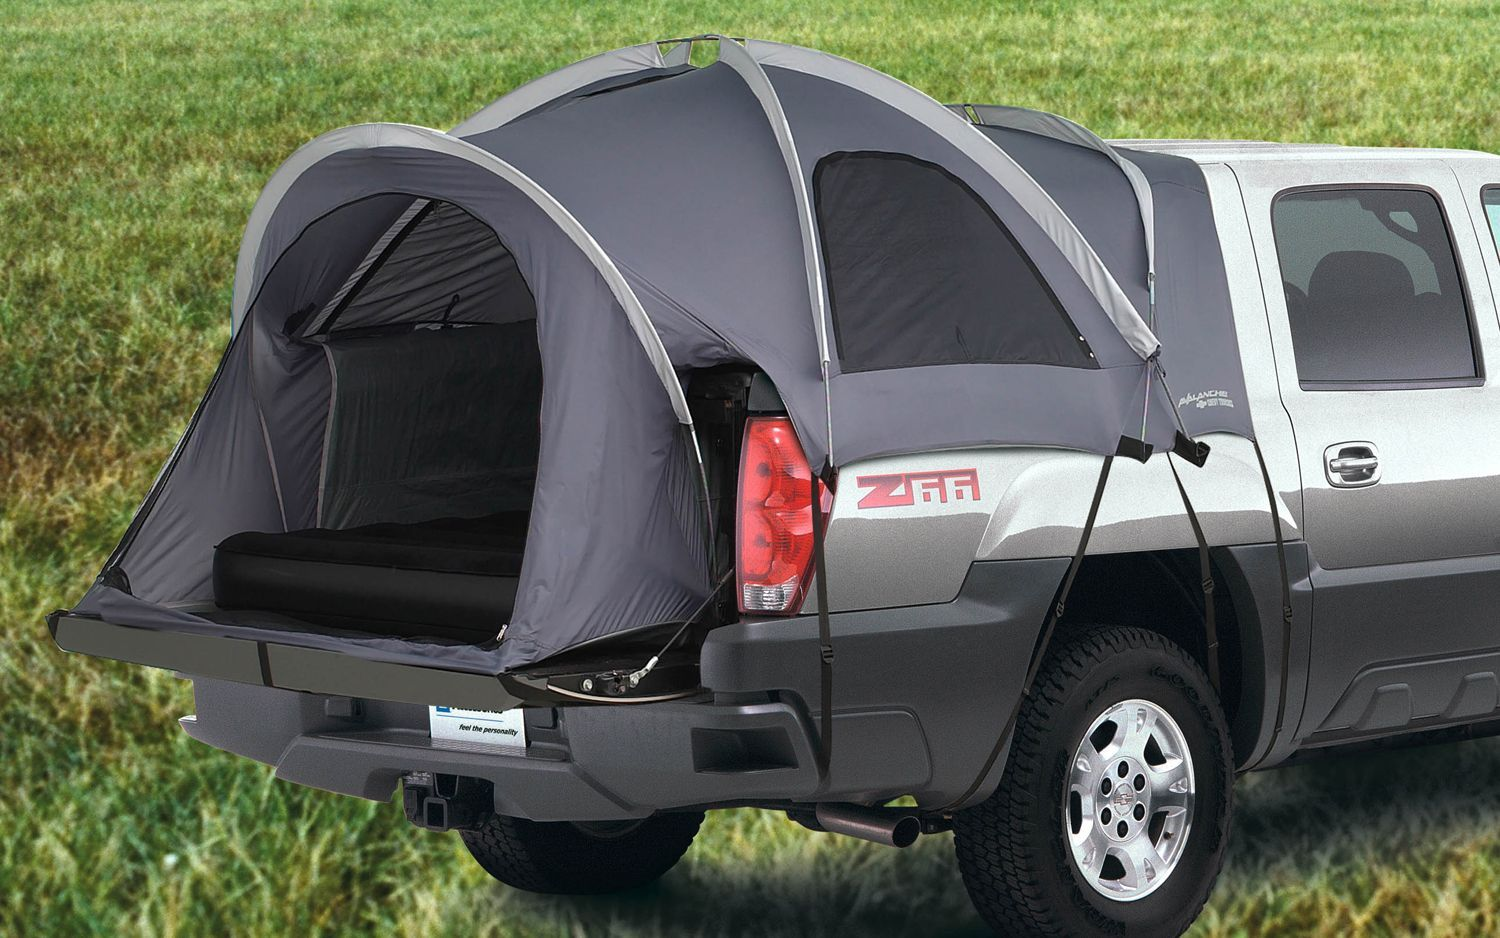 2003 Chevy Avalanche Tent I love to c& and I love to drive.this is a perfect pair & 2003-chevrolet-avalanche-tent.jpg (1500×938) | Avalanche Ideas ...